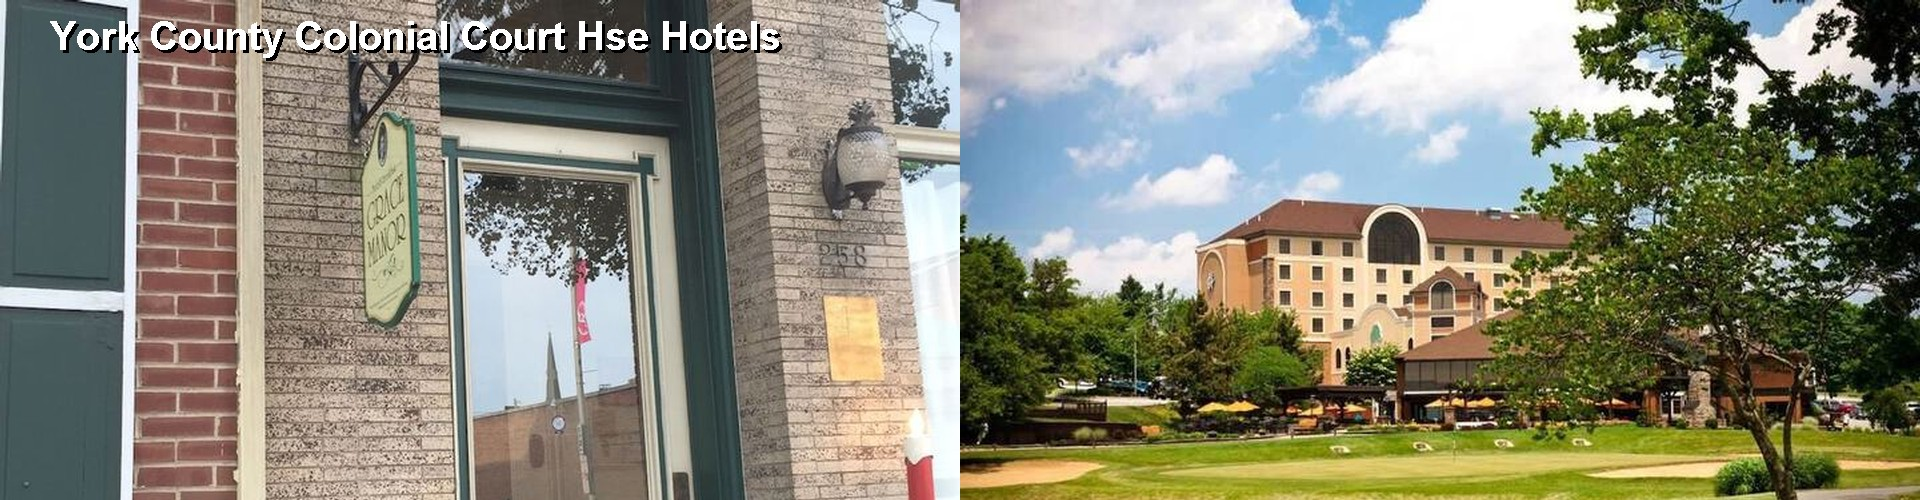 3 Best Hotels near York County Colonial Court Hse